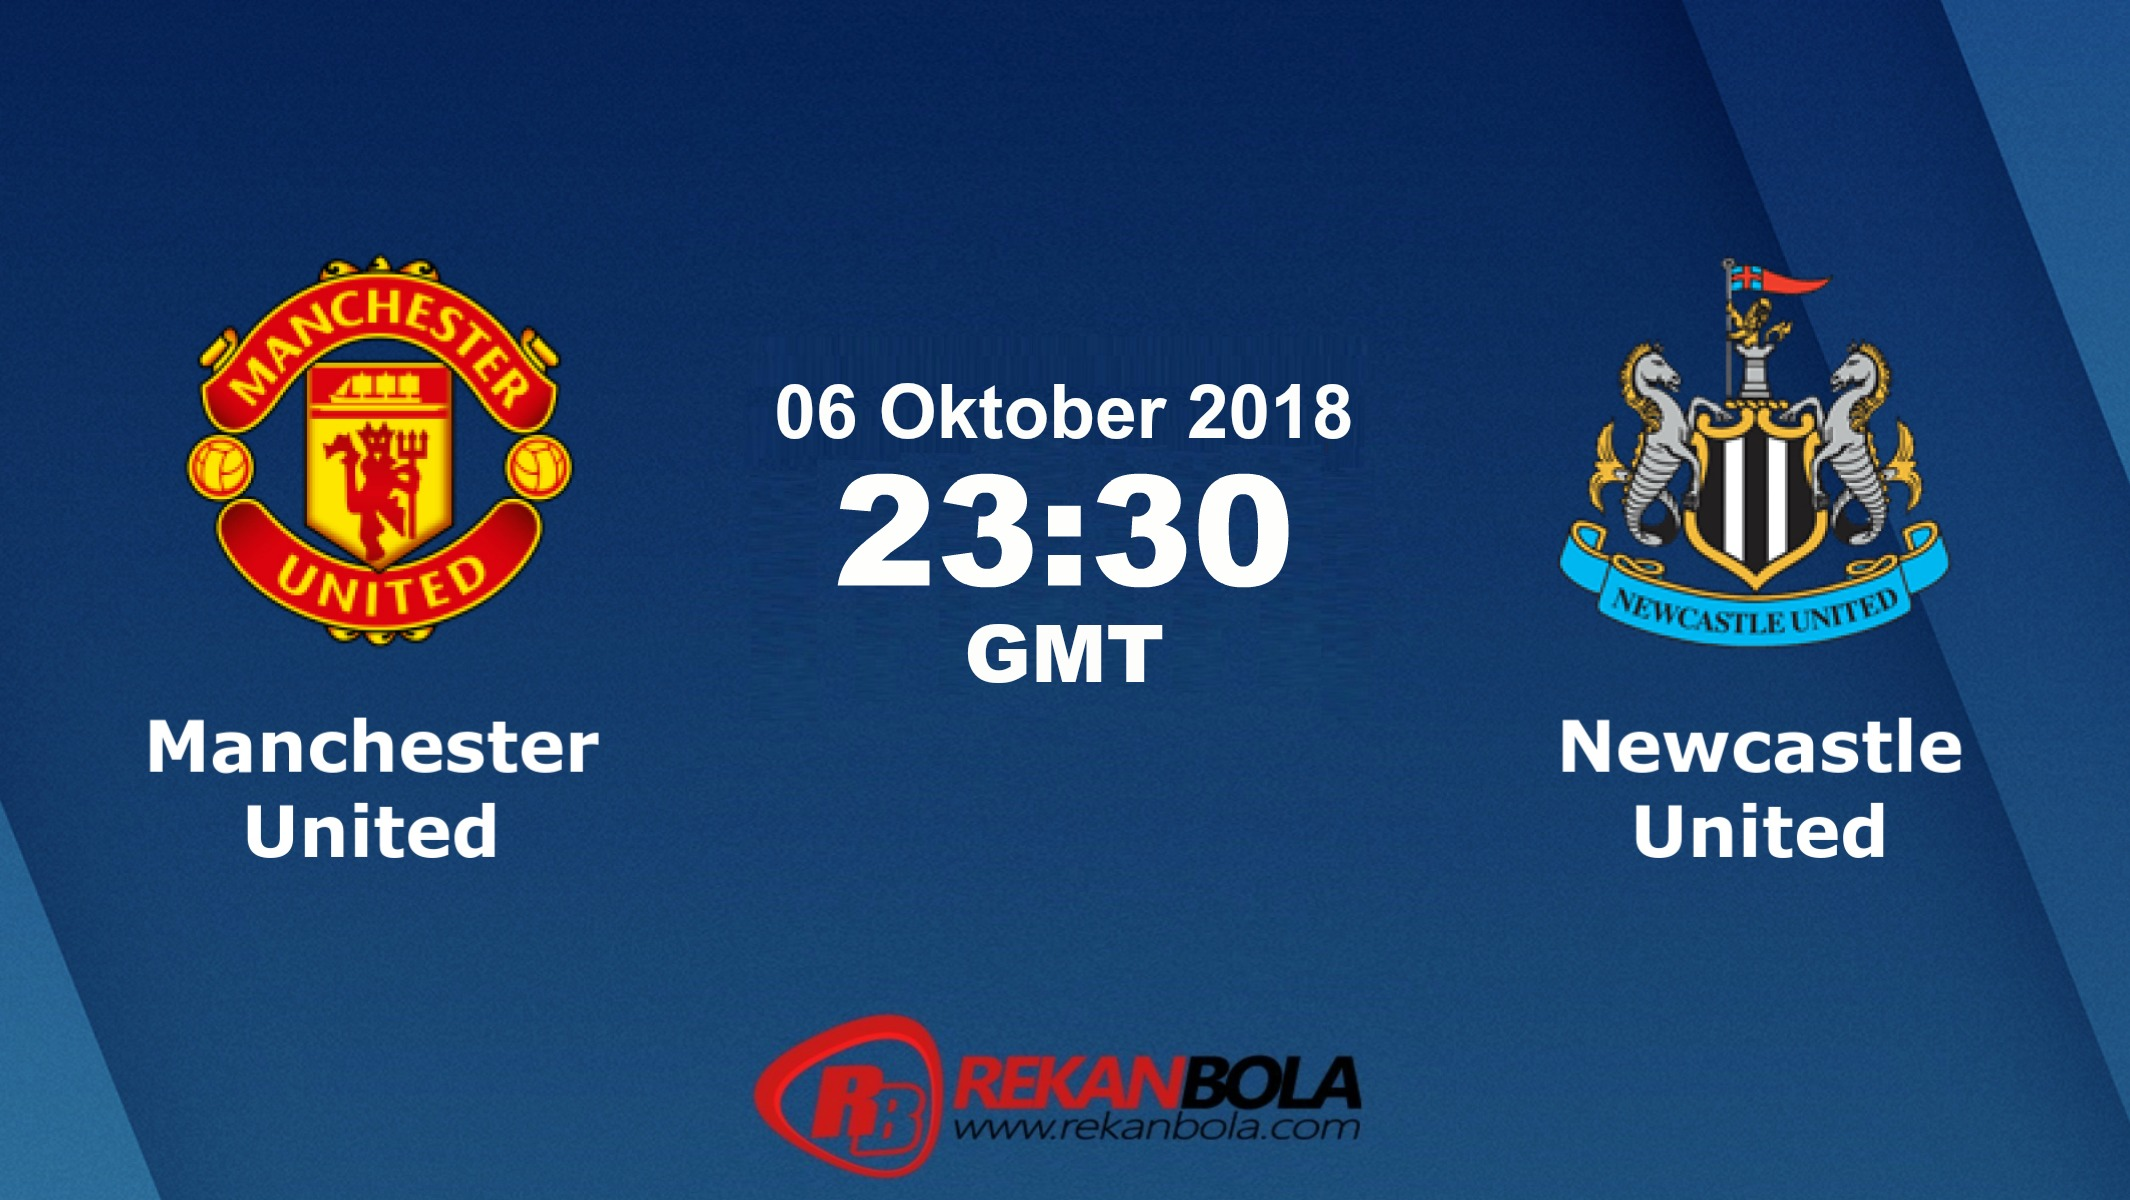 Nonton Siaran Live Streaming Man Utd Vs Newcastle 06 Oktober 2018